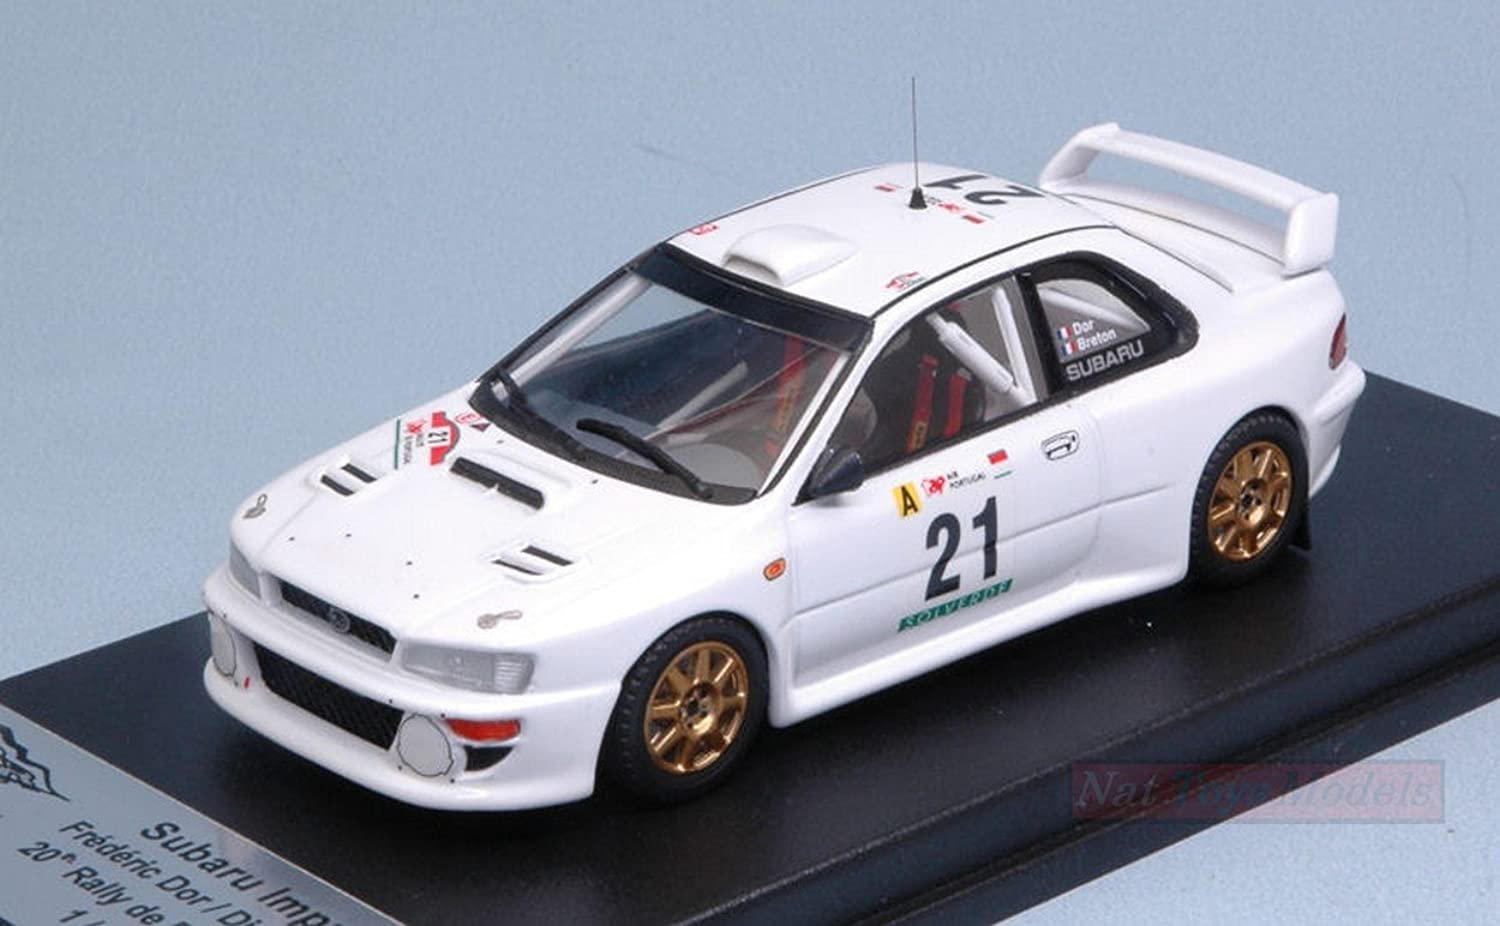 Trofeu TFRRAL60 Subaru Impreza WRC 20th Rtuttiy of Portugal 1999 DOR-Breton 1 43 Compatibile con